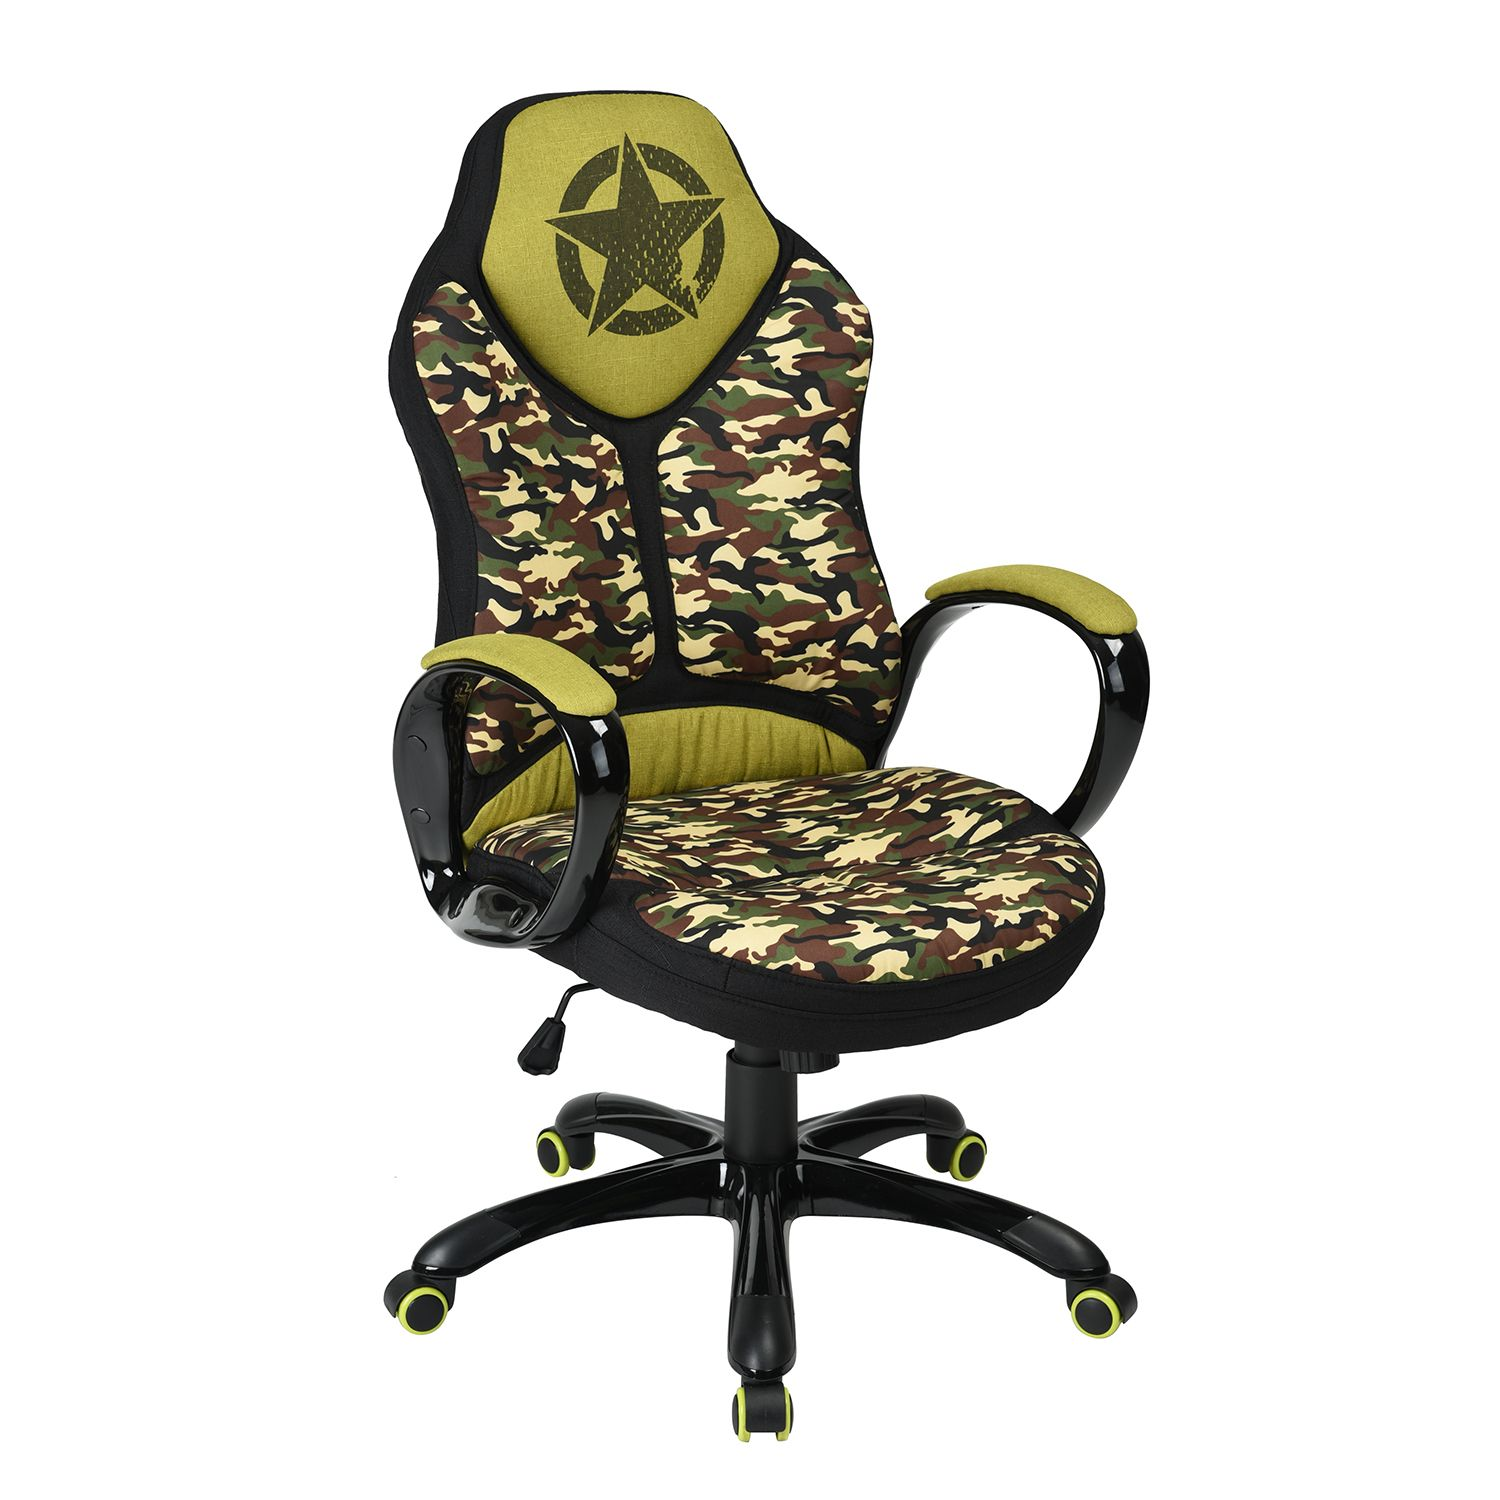 99.99, Free Delivery US. Office Gaming Chair Fabric Desk